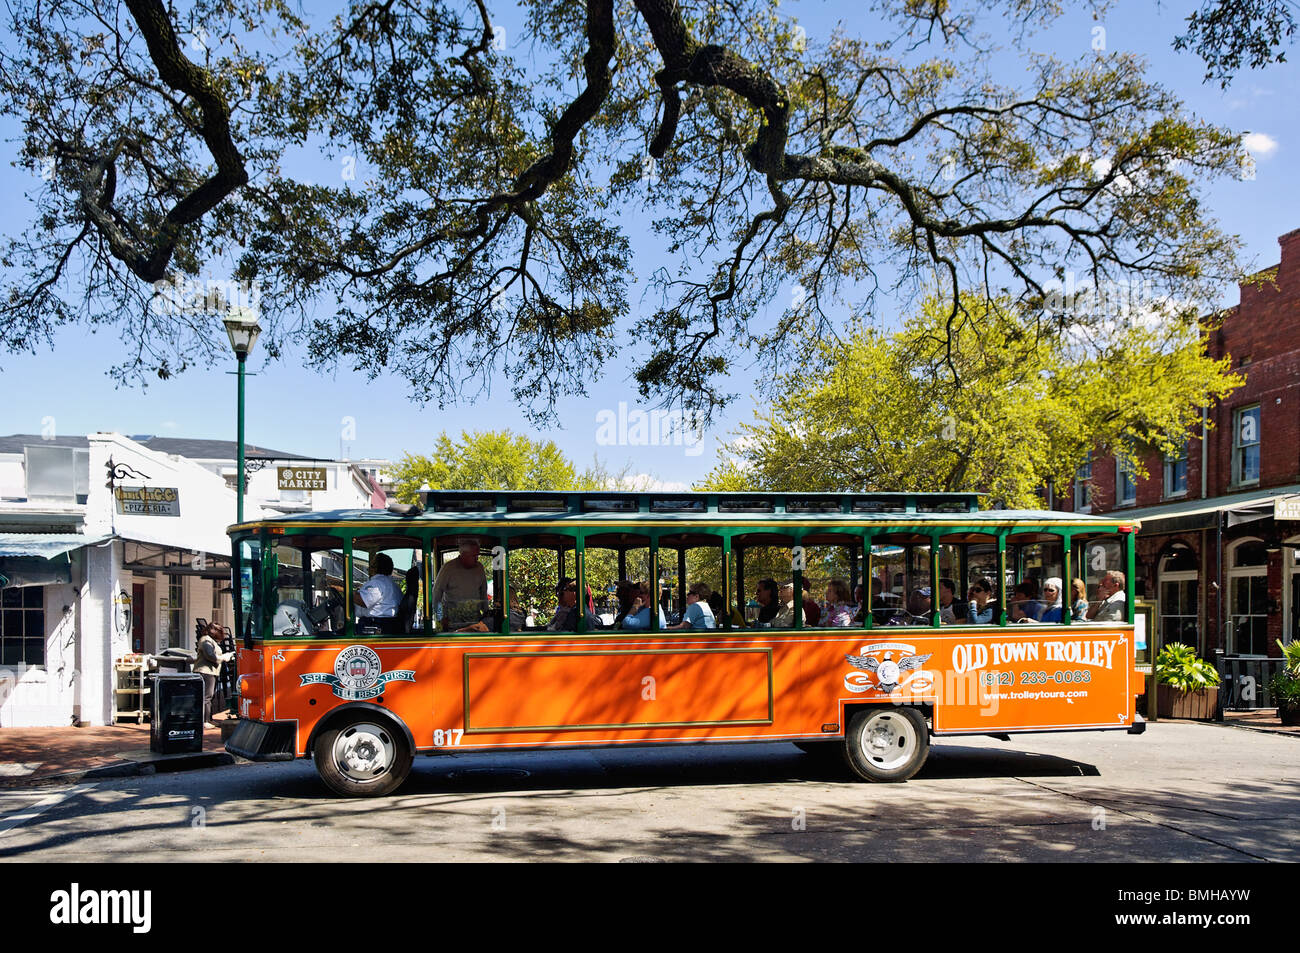 Old Town Trolley filled with Tourists in Downtown Savannah, Georgia - Stock Image